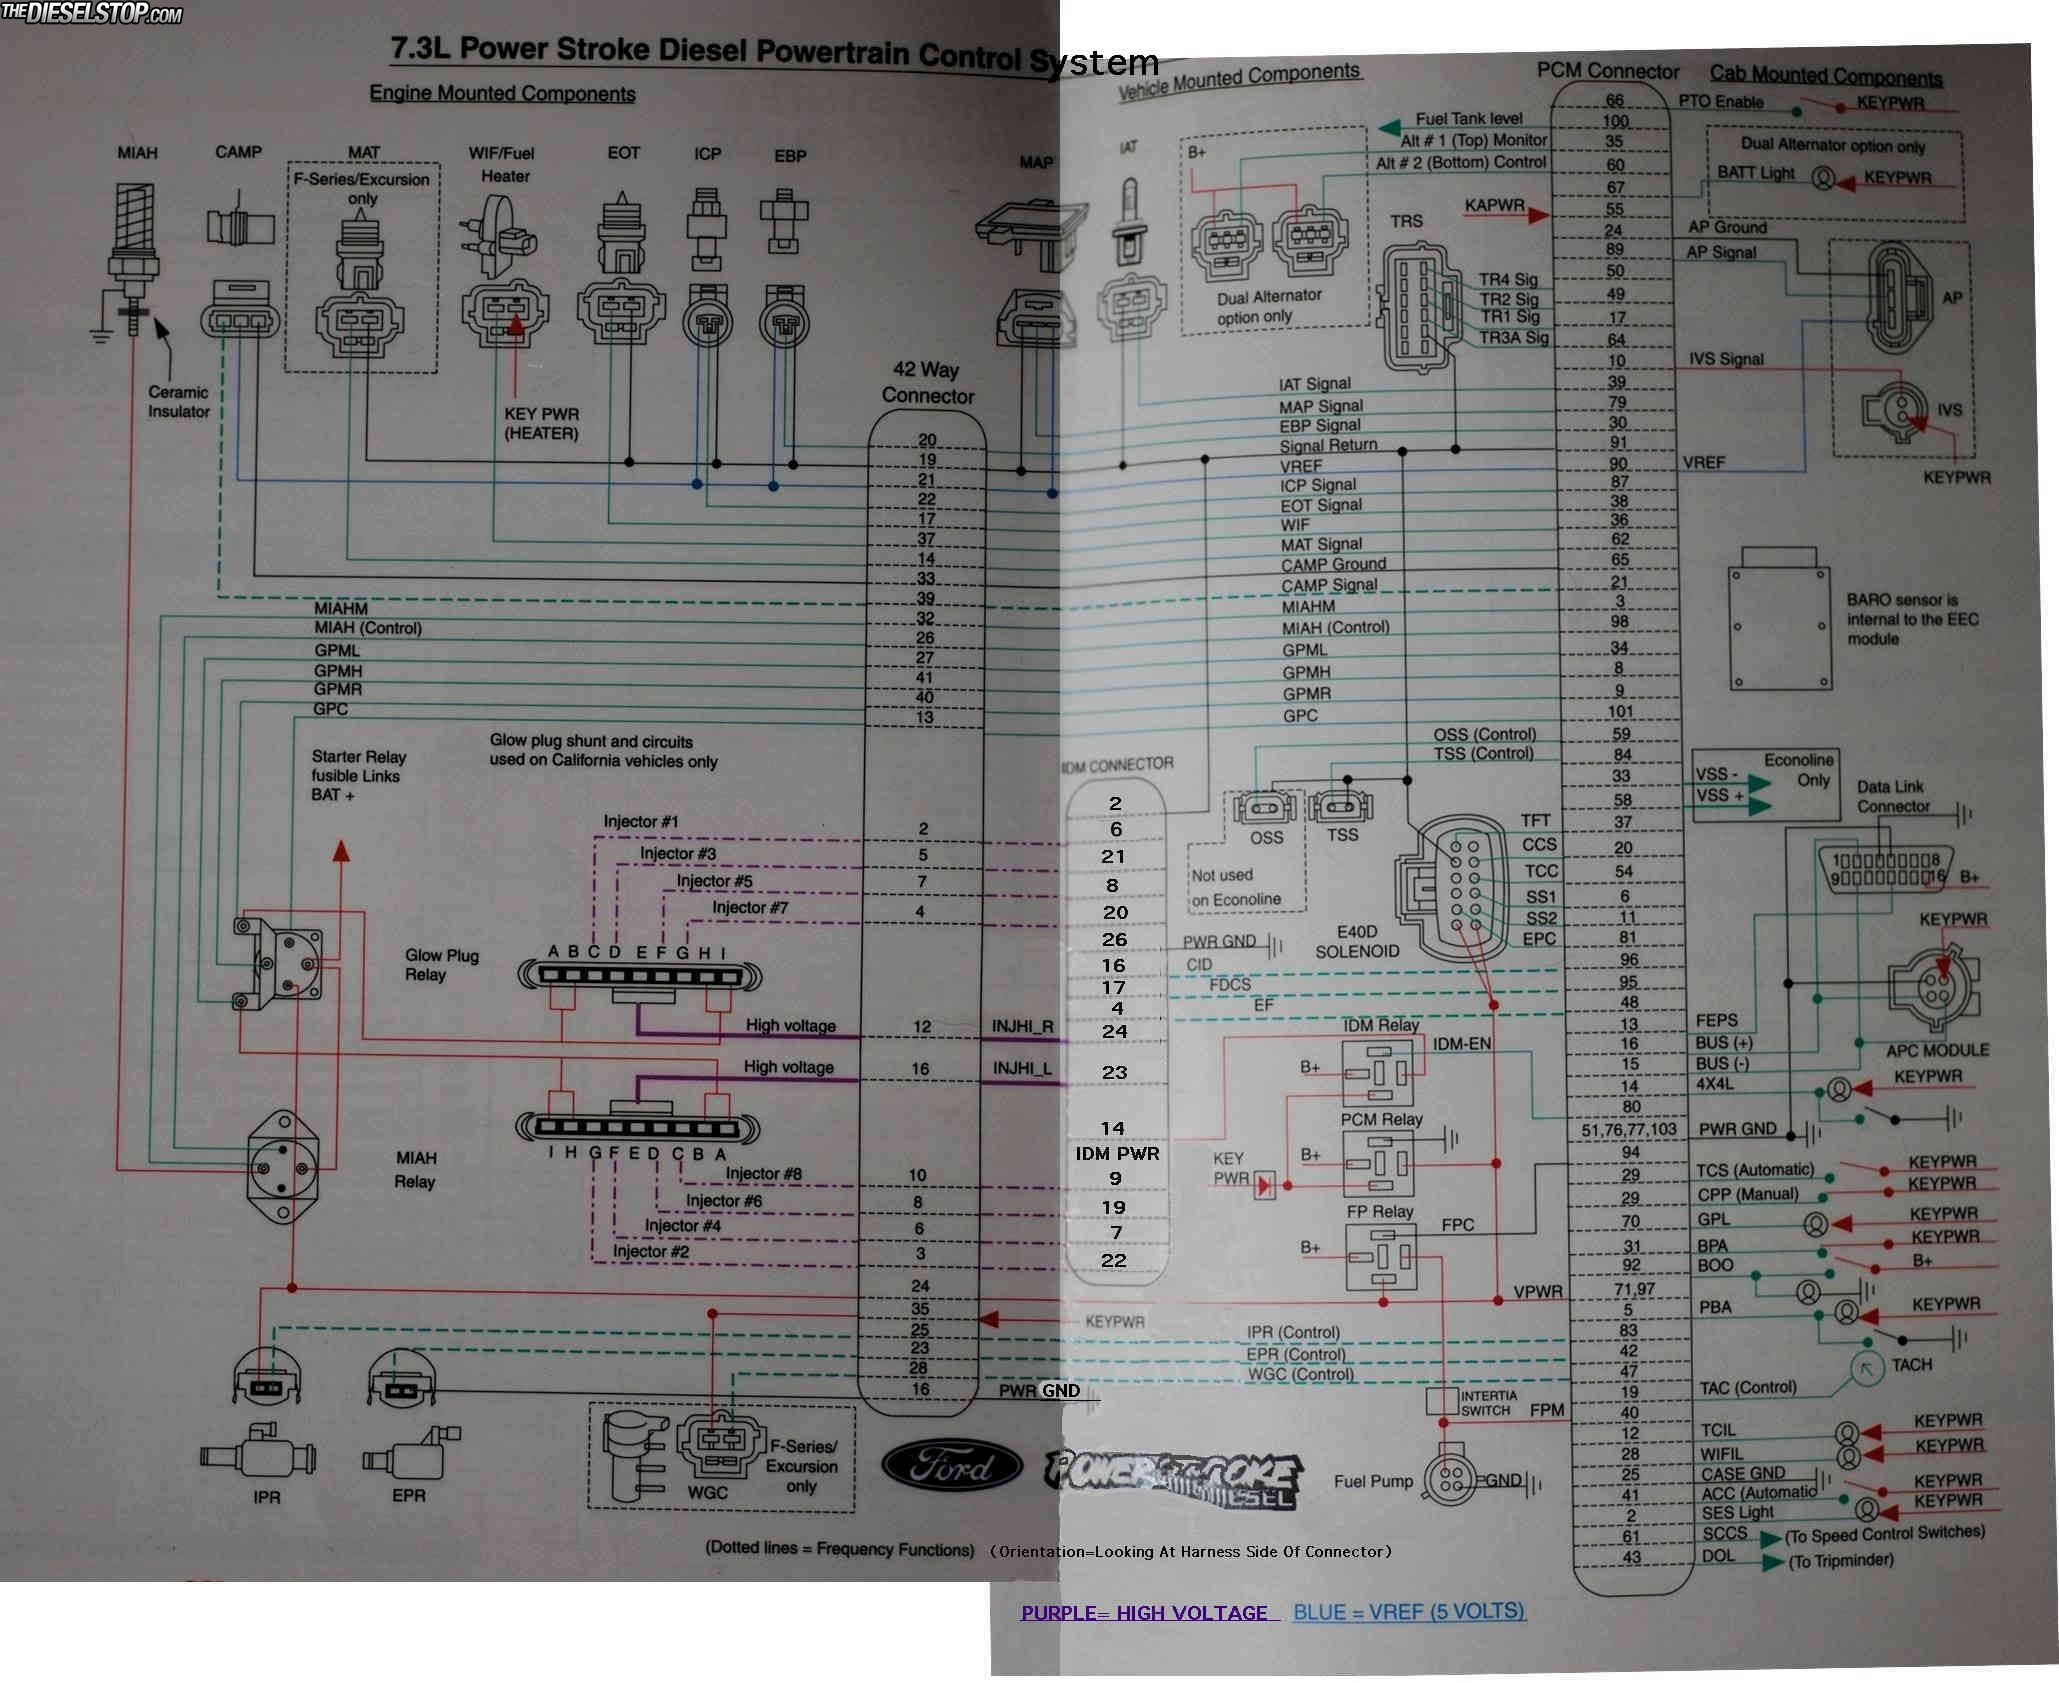 7 3 Powerstroke Parts Diagram 7 3l Wiring Schematic Printable Very Handy Diesel forum Of 7 3 Powerstroke Parts Diagram 1997 7 3l Engine Diagram Experts Wiring Diagram •